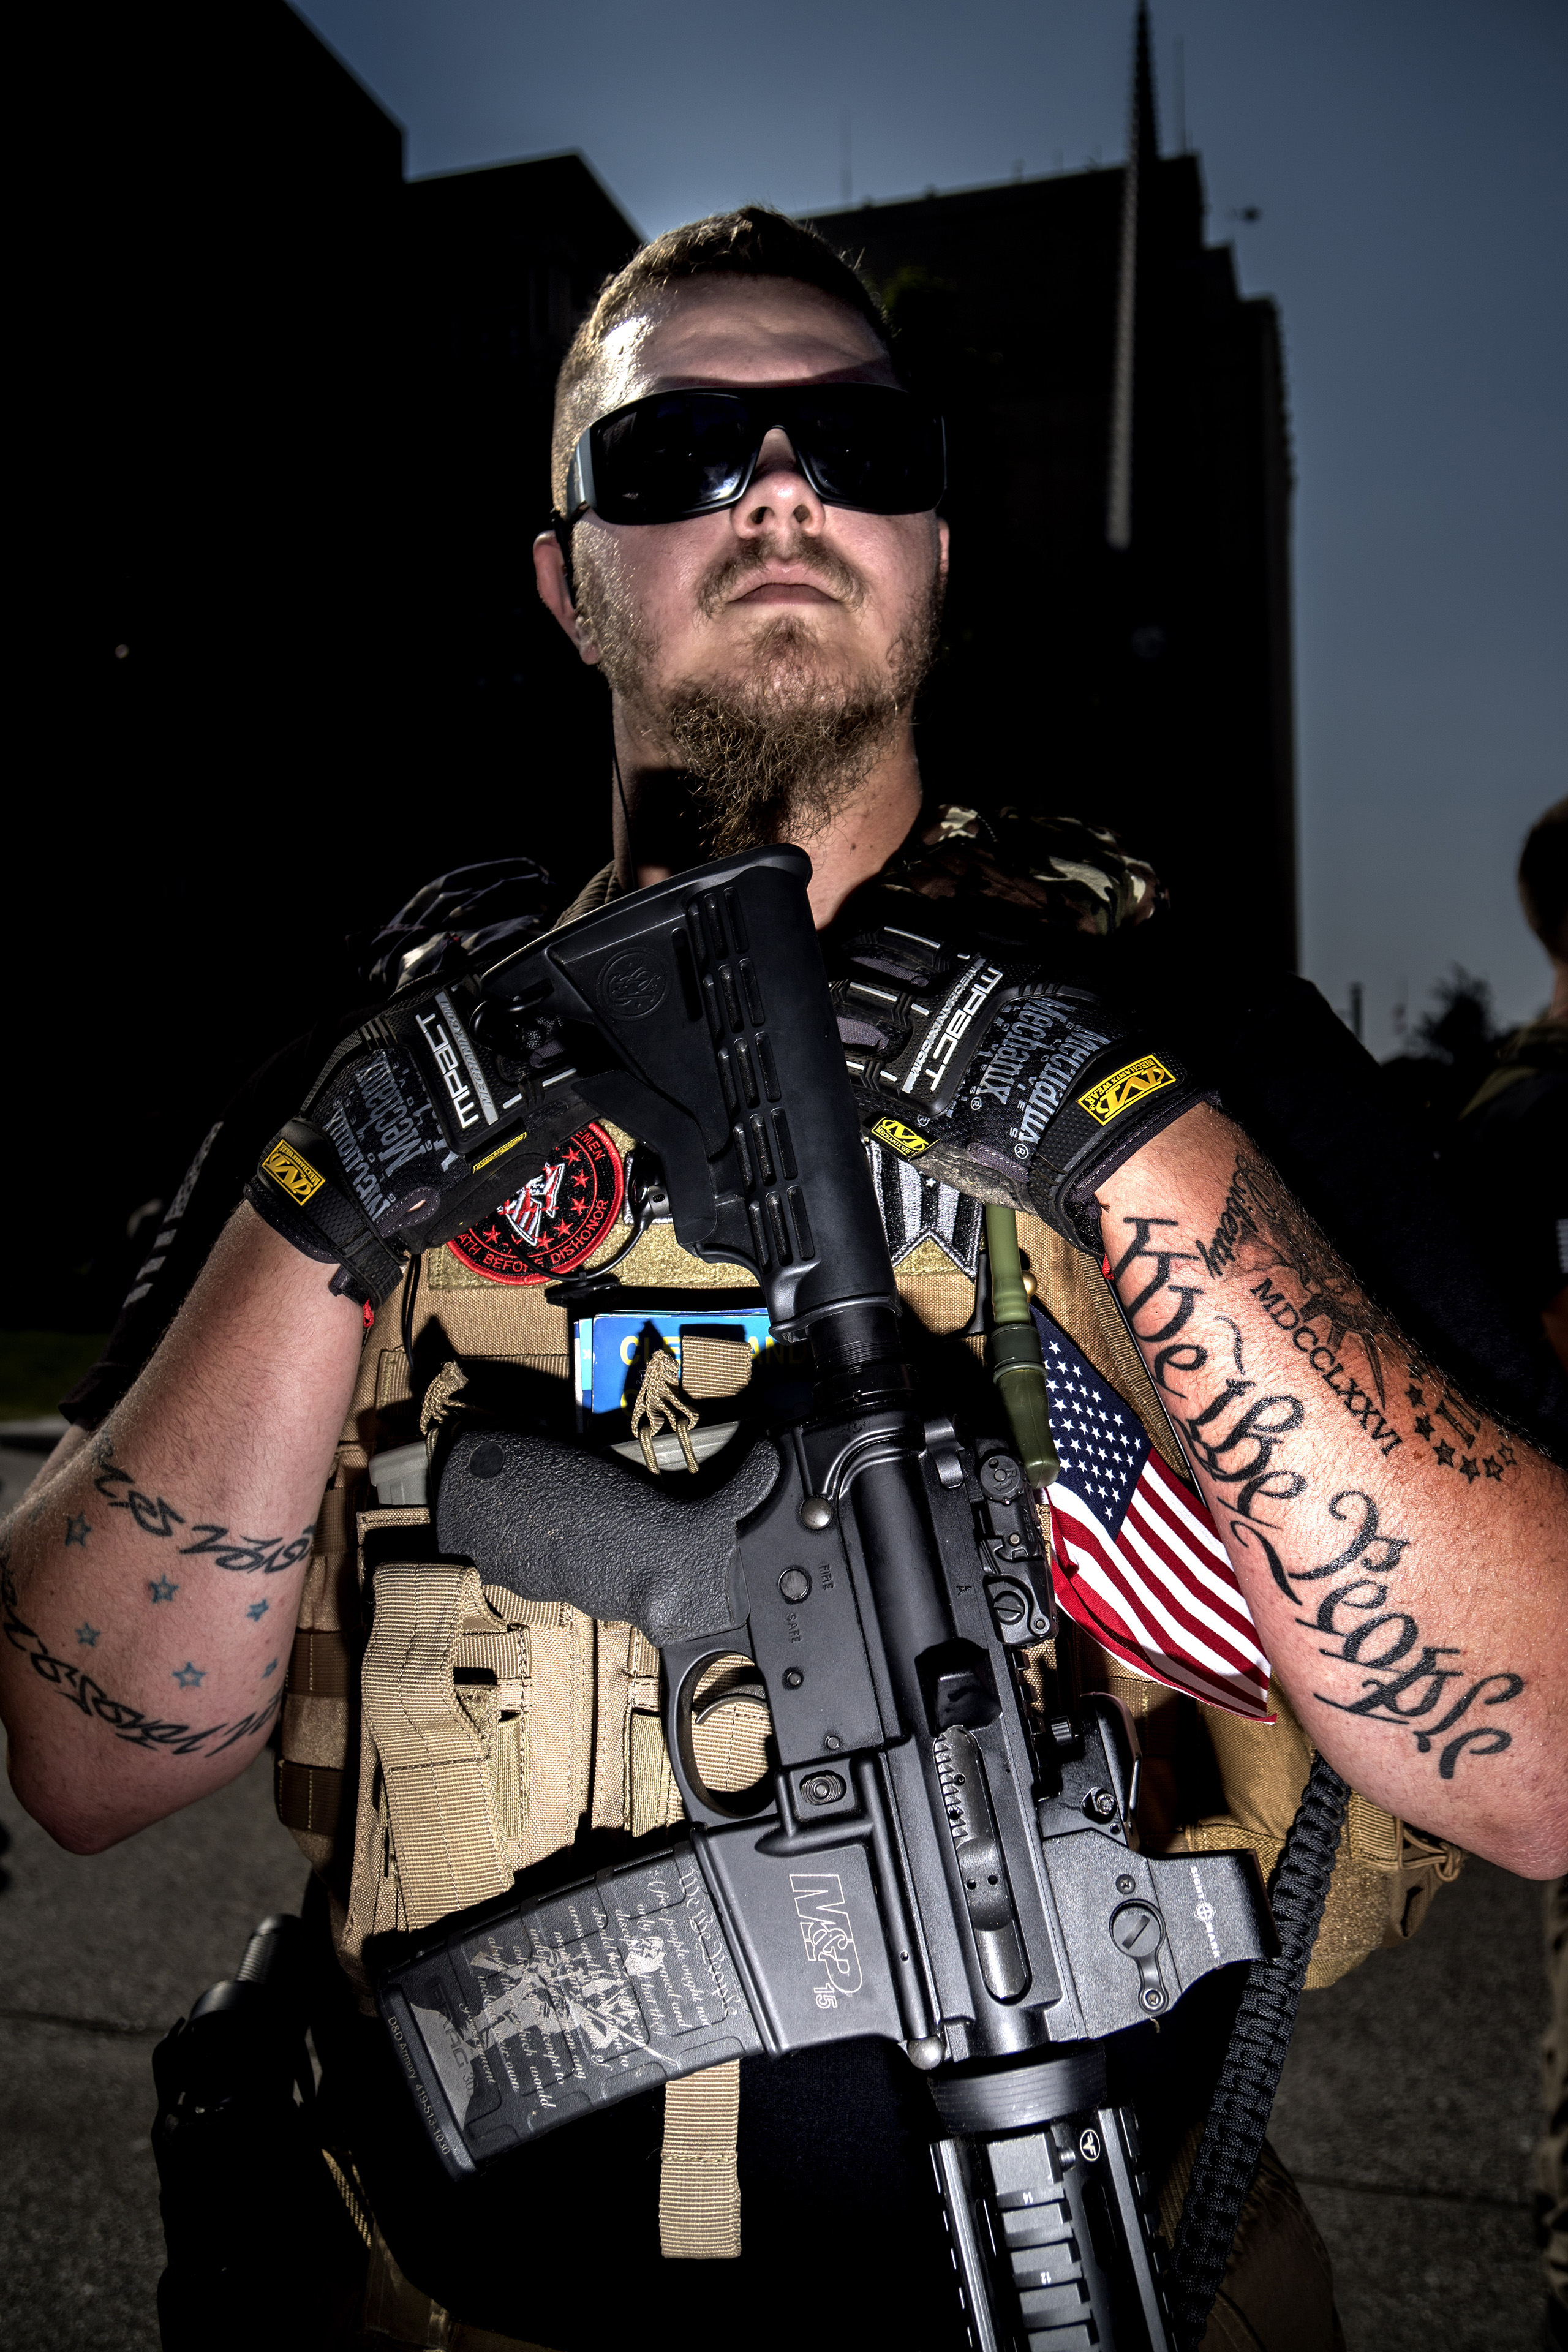 Trevor Leis, of Lime OH, supports open carry and the ammo clip of his AR-15 is laser engraved with the constitution. Leis showed up at the Cleveland public square to demonstrate along with hundreds of other protesters representing numerous agendas and beliefs on July 19, 2016.